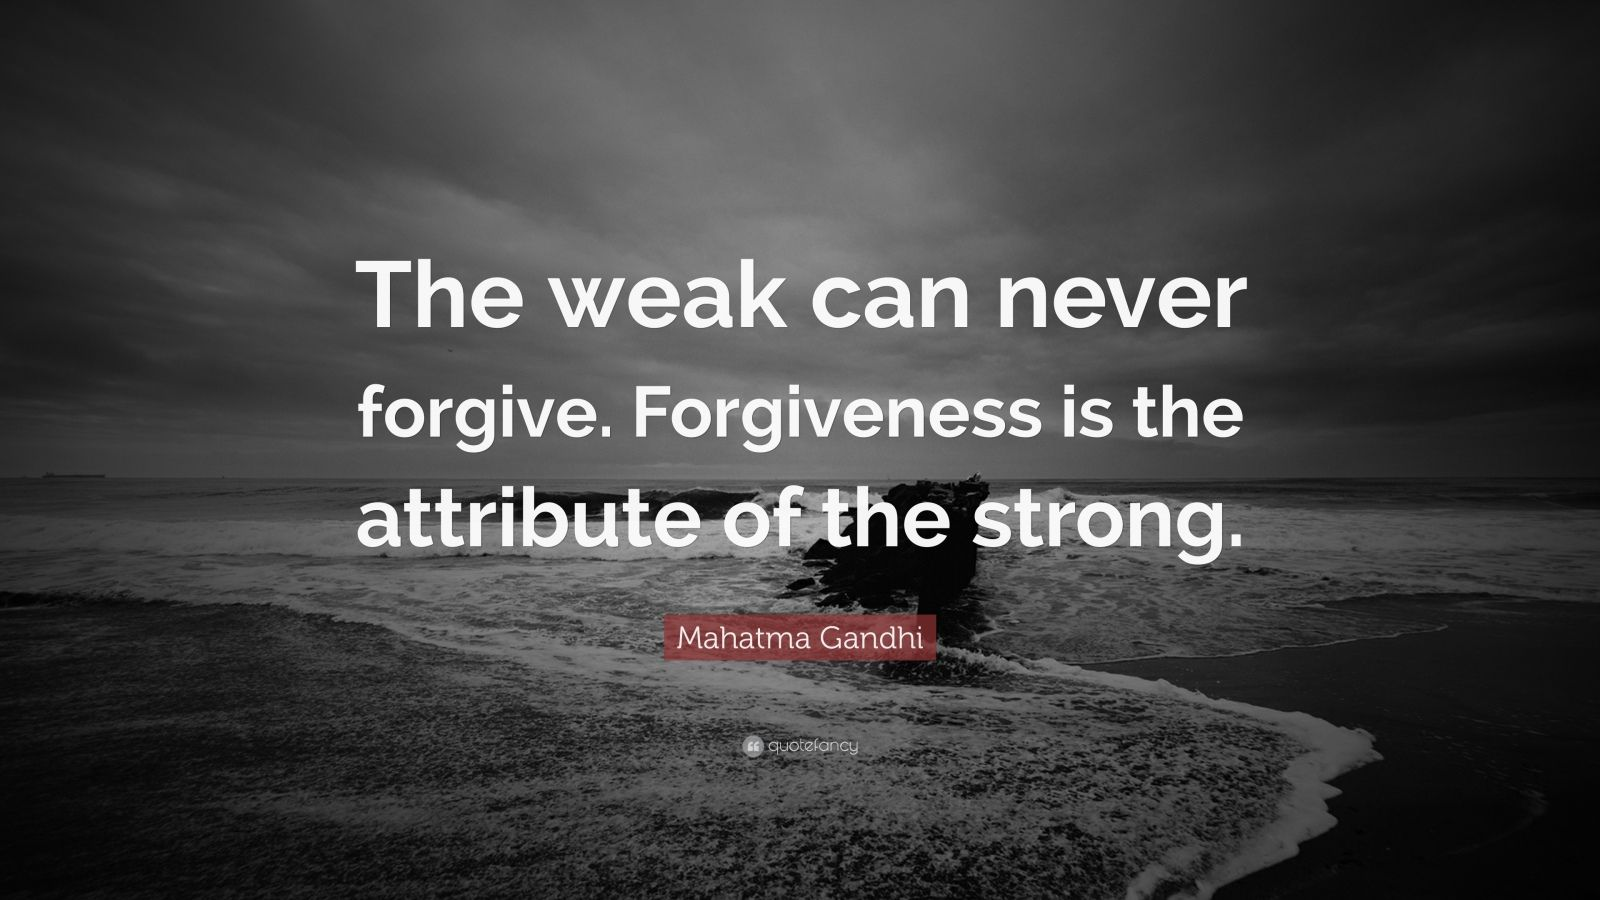 Gandhi Wallpapers With Quotes Mahatma Gandhi Quote The Weak Can Never Forgive